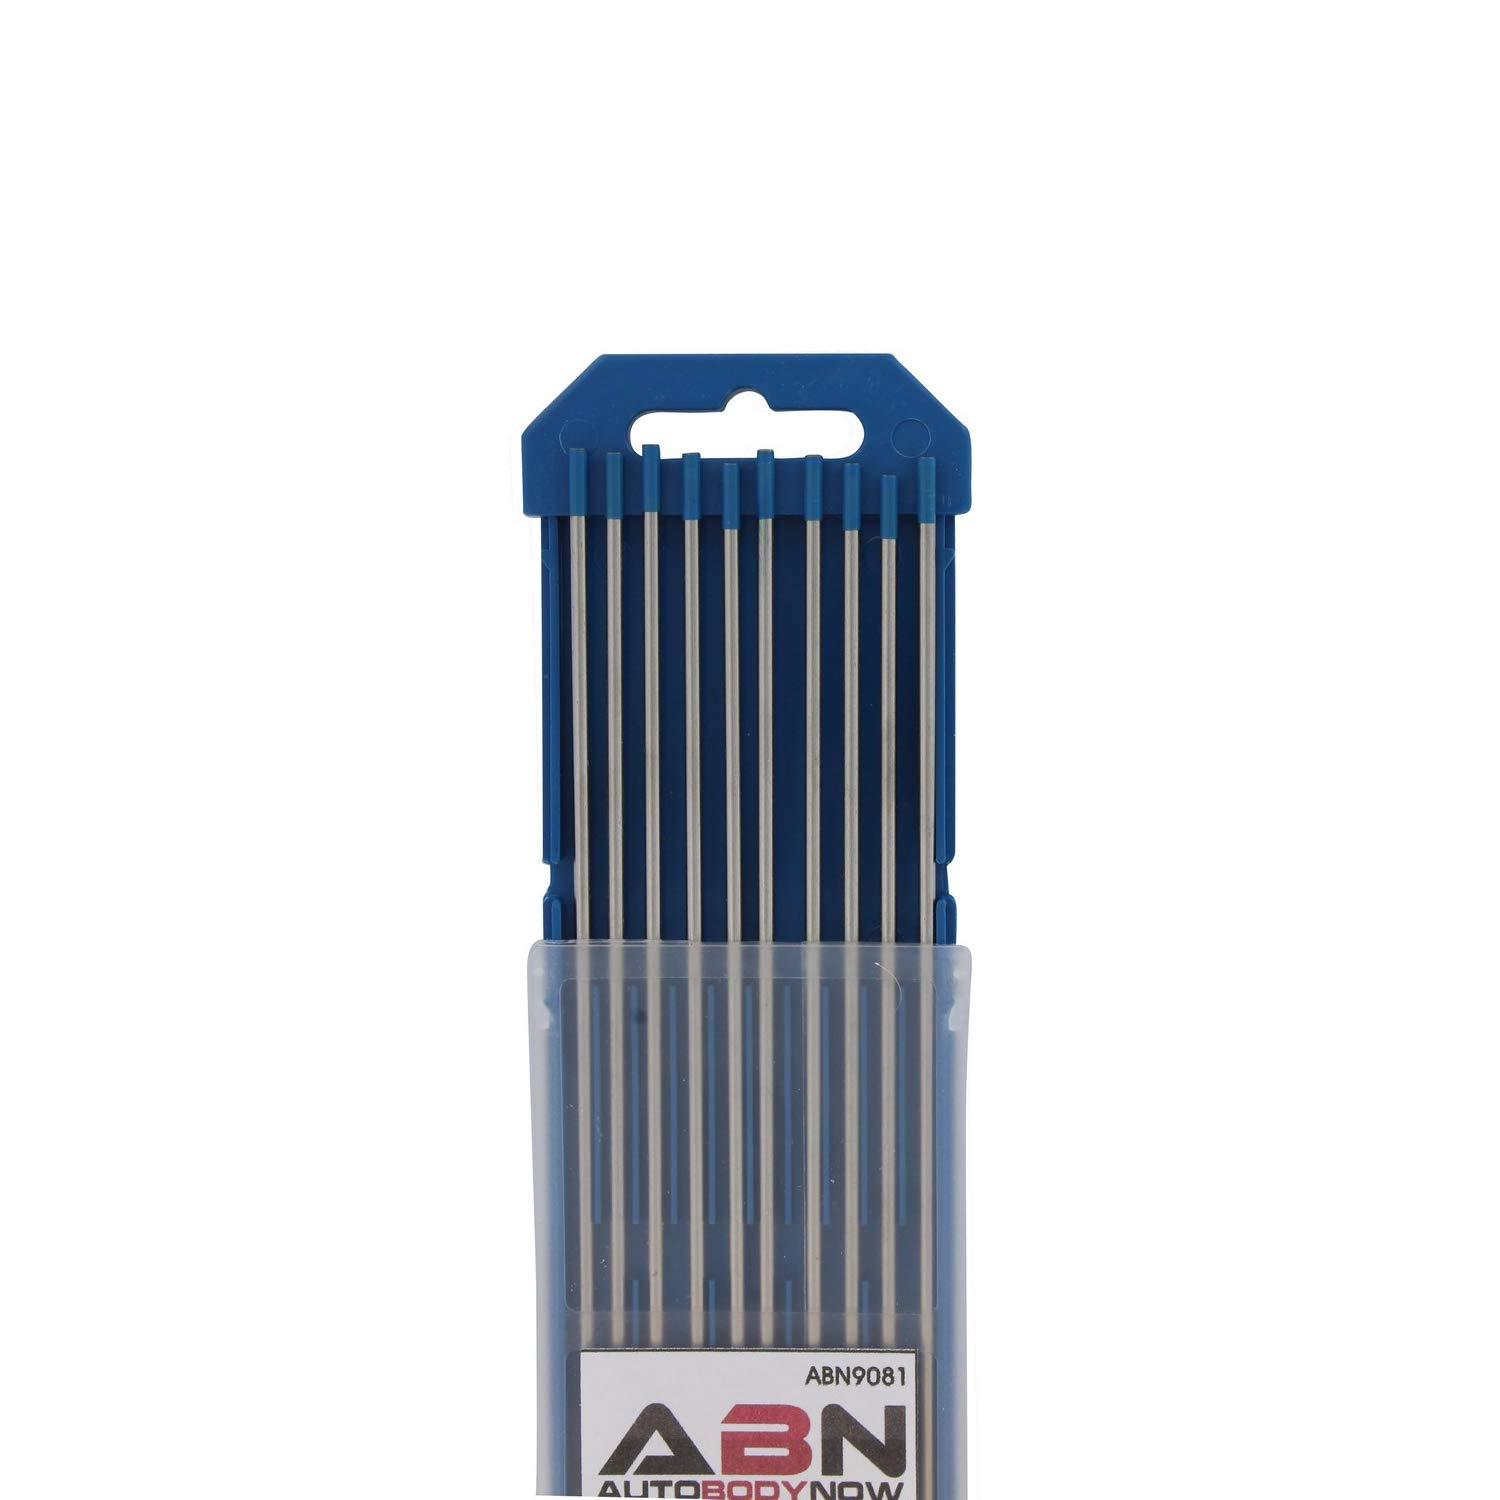 ABN 9081 Tungsten Welding Electrodes Pack of 10 Auto Body Now 2/% Wl20 Lanthanide Tig Mig Arc Ac Dc Blue